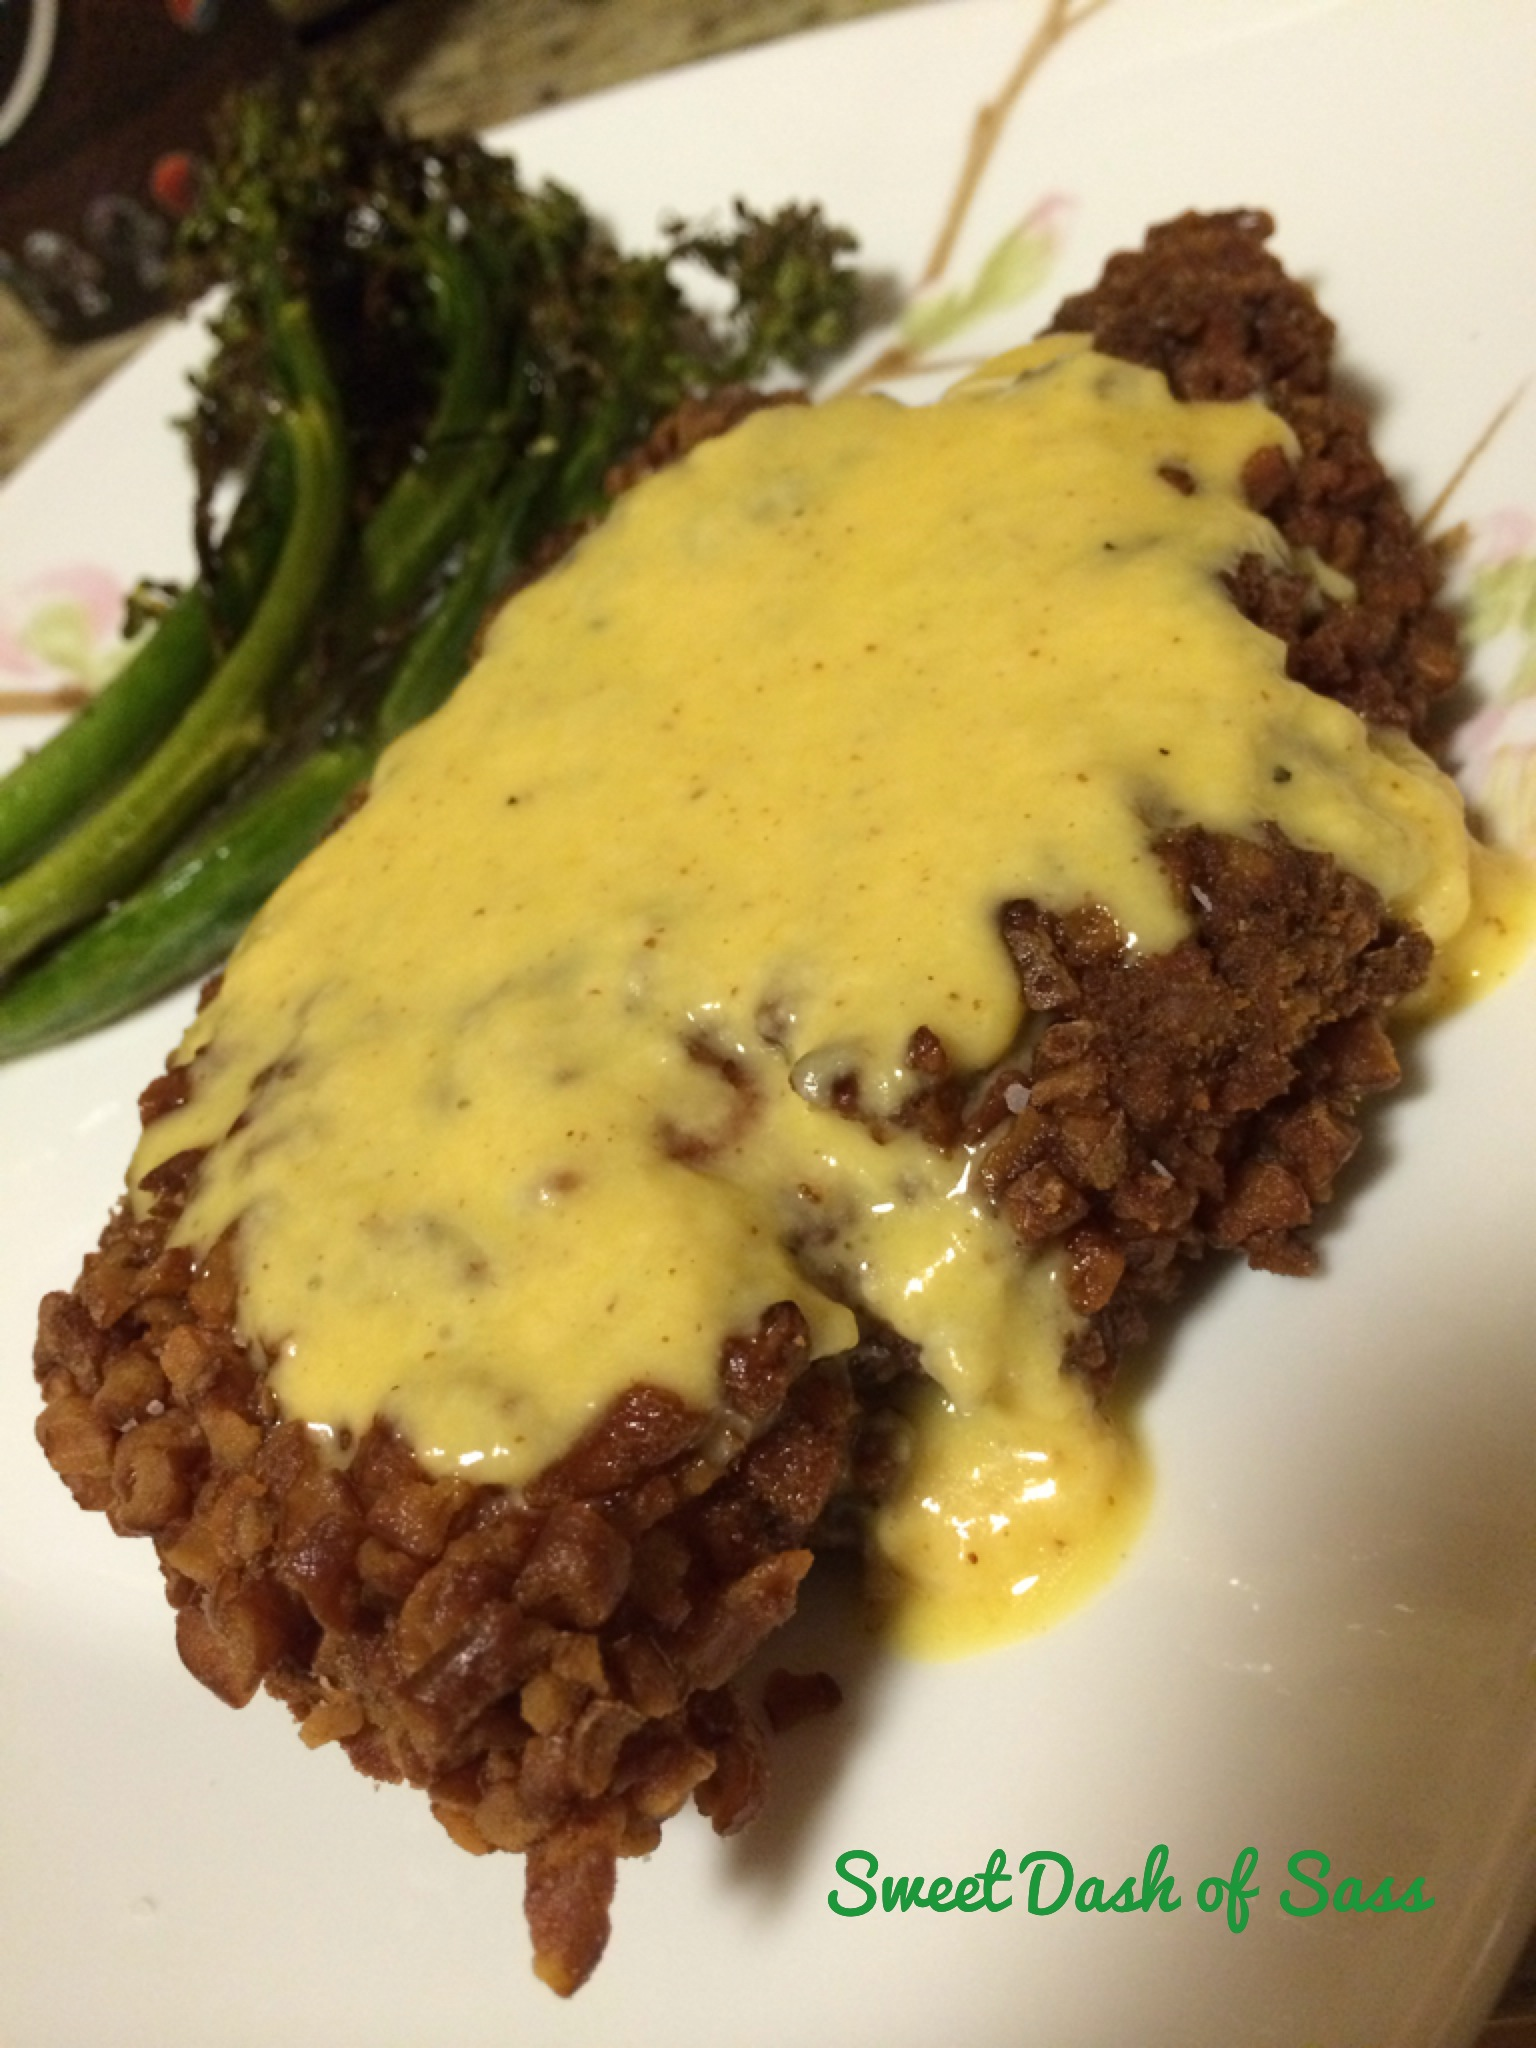 #4 - Pretzel Crusted Chicken with a Cheesy Mustard Sauce - www.SweetDashofSass.com